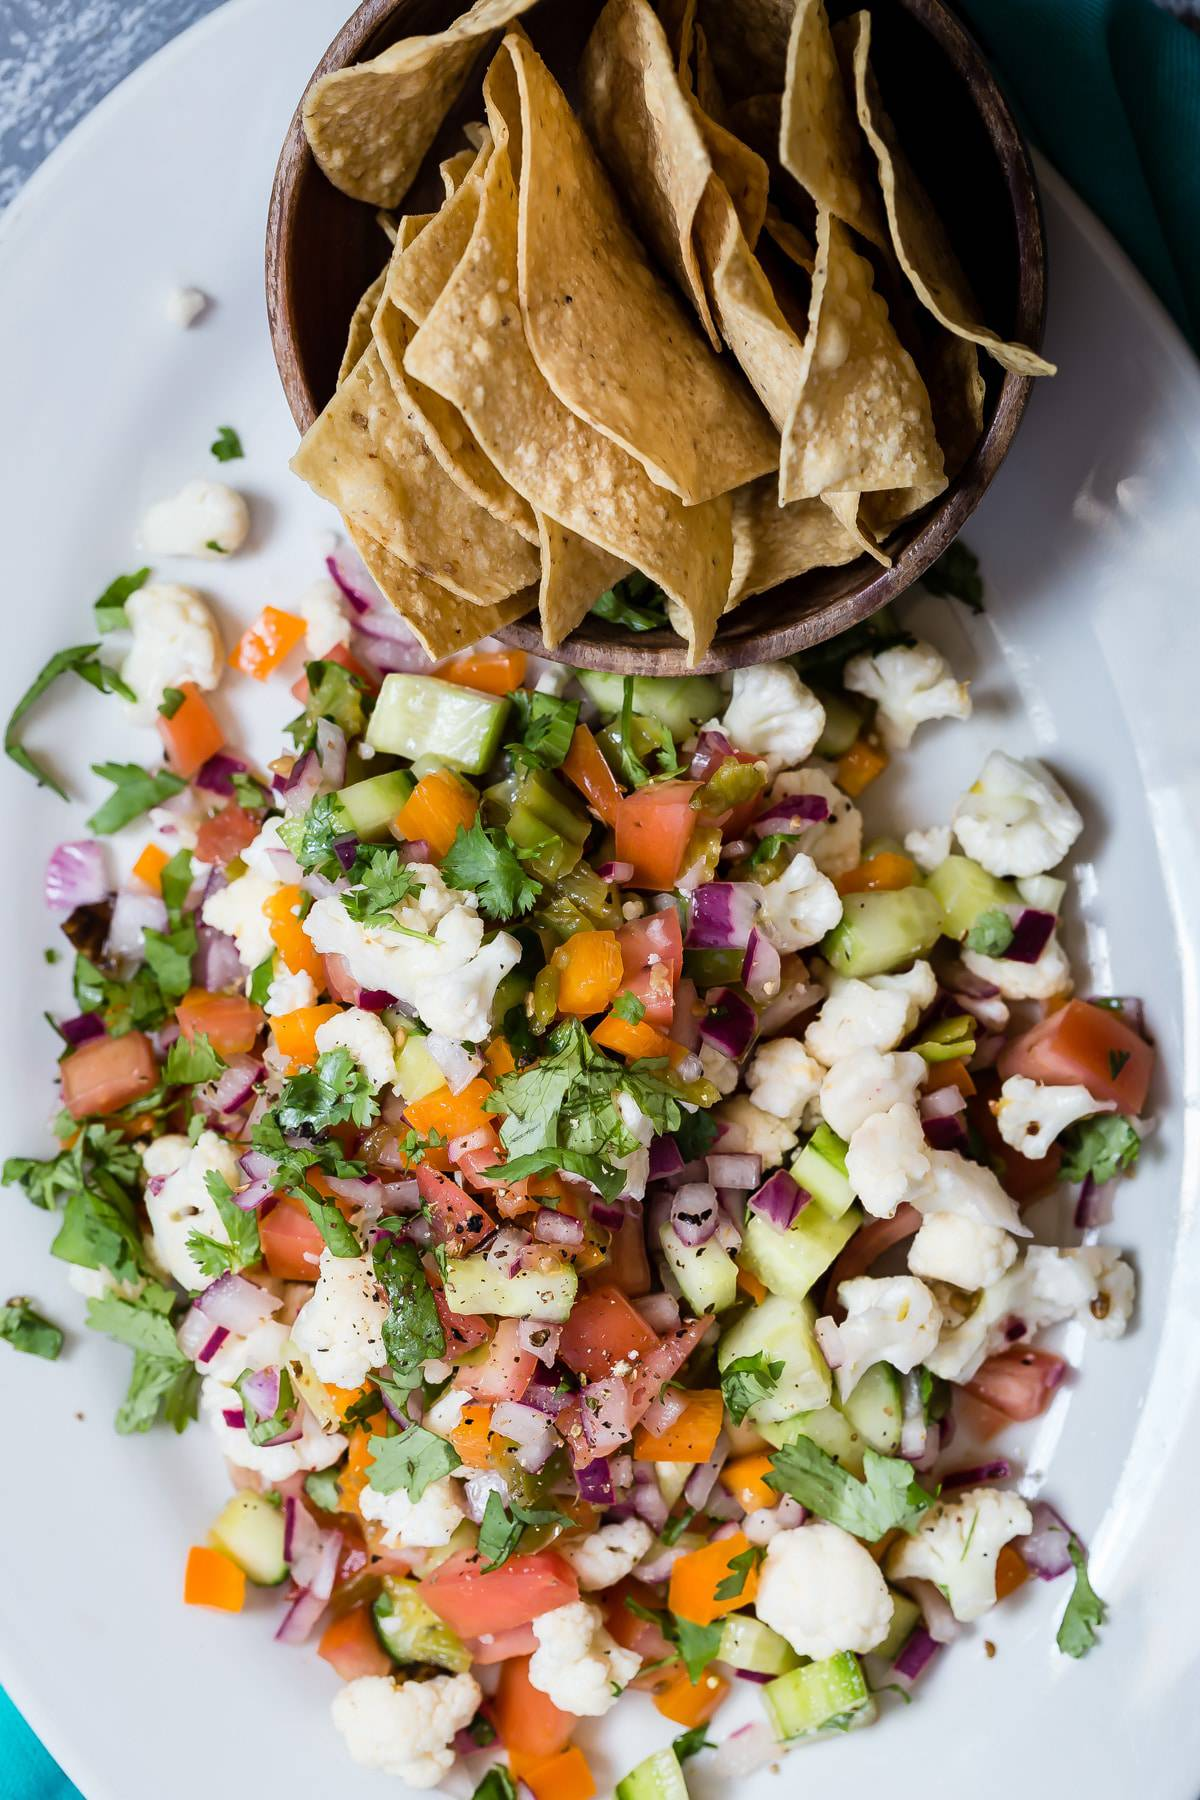 Tasty vegetarian ceviche with crunchy fresh tortilla chips!